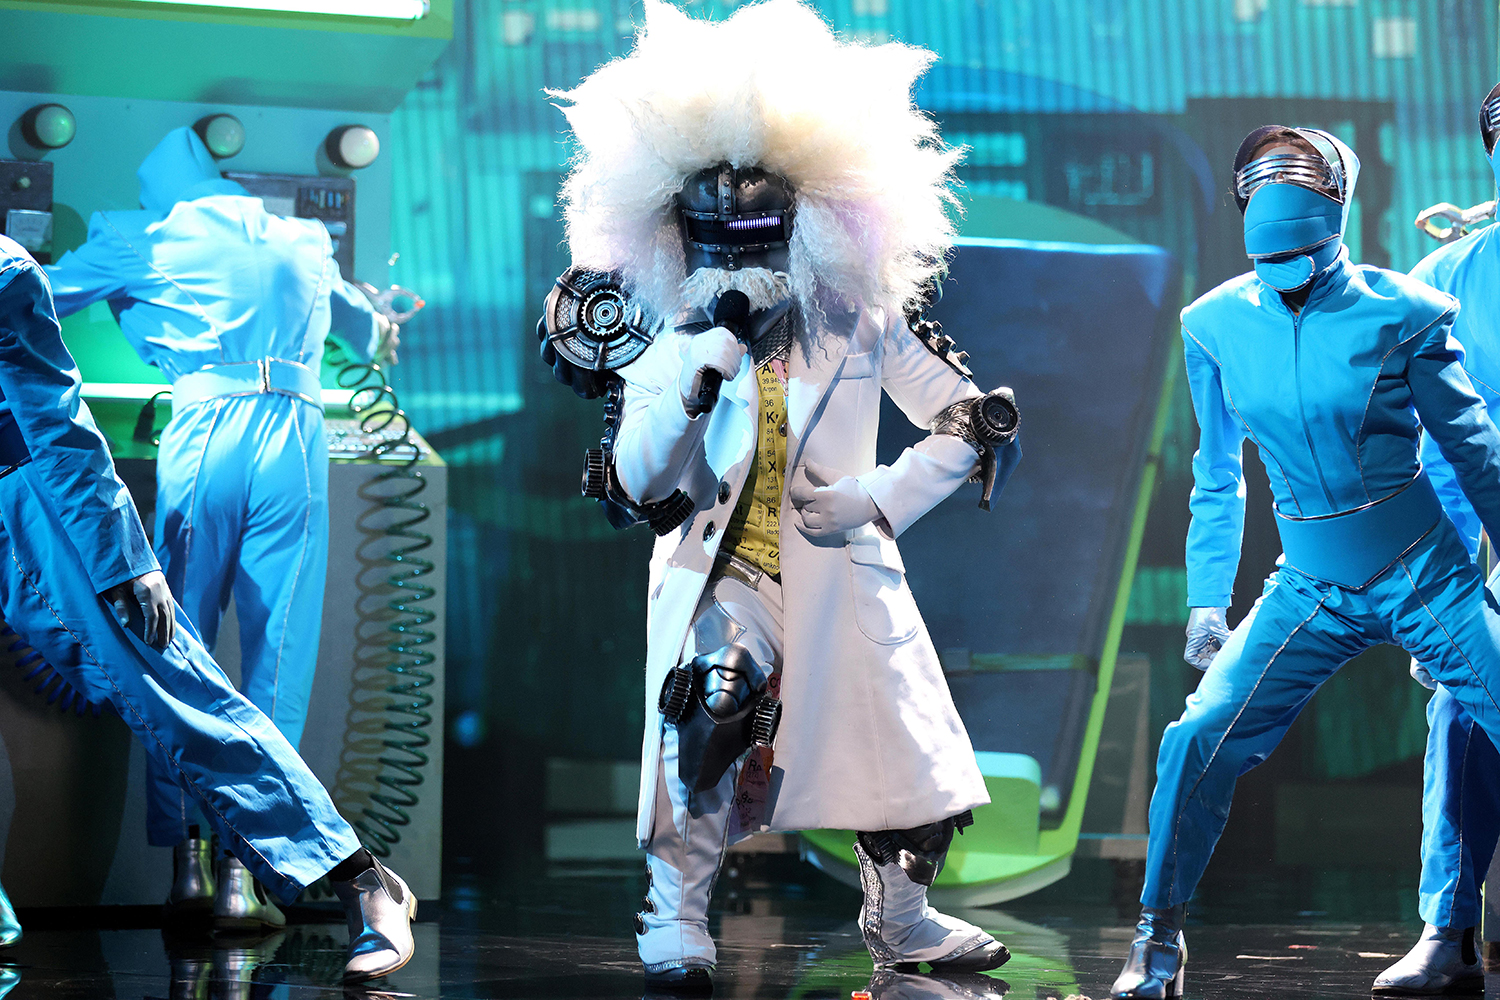 You Guessed It - That Was Ben Lee On 'The Masked Singer' And He's Told Us All About It